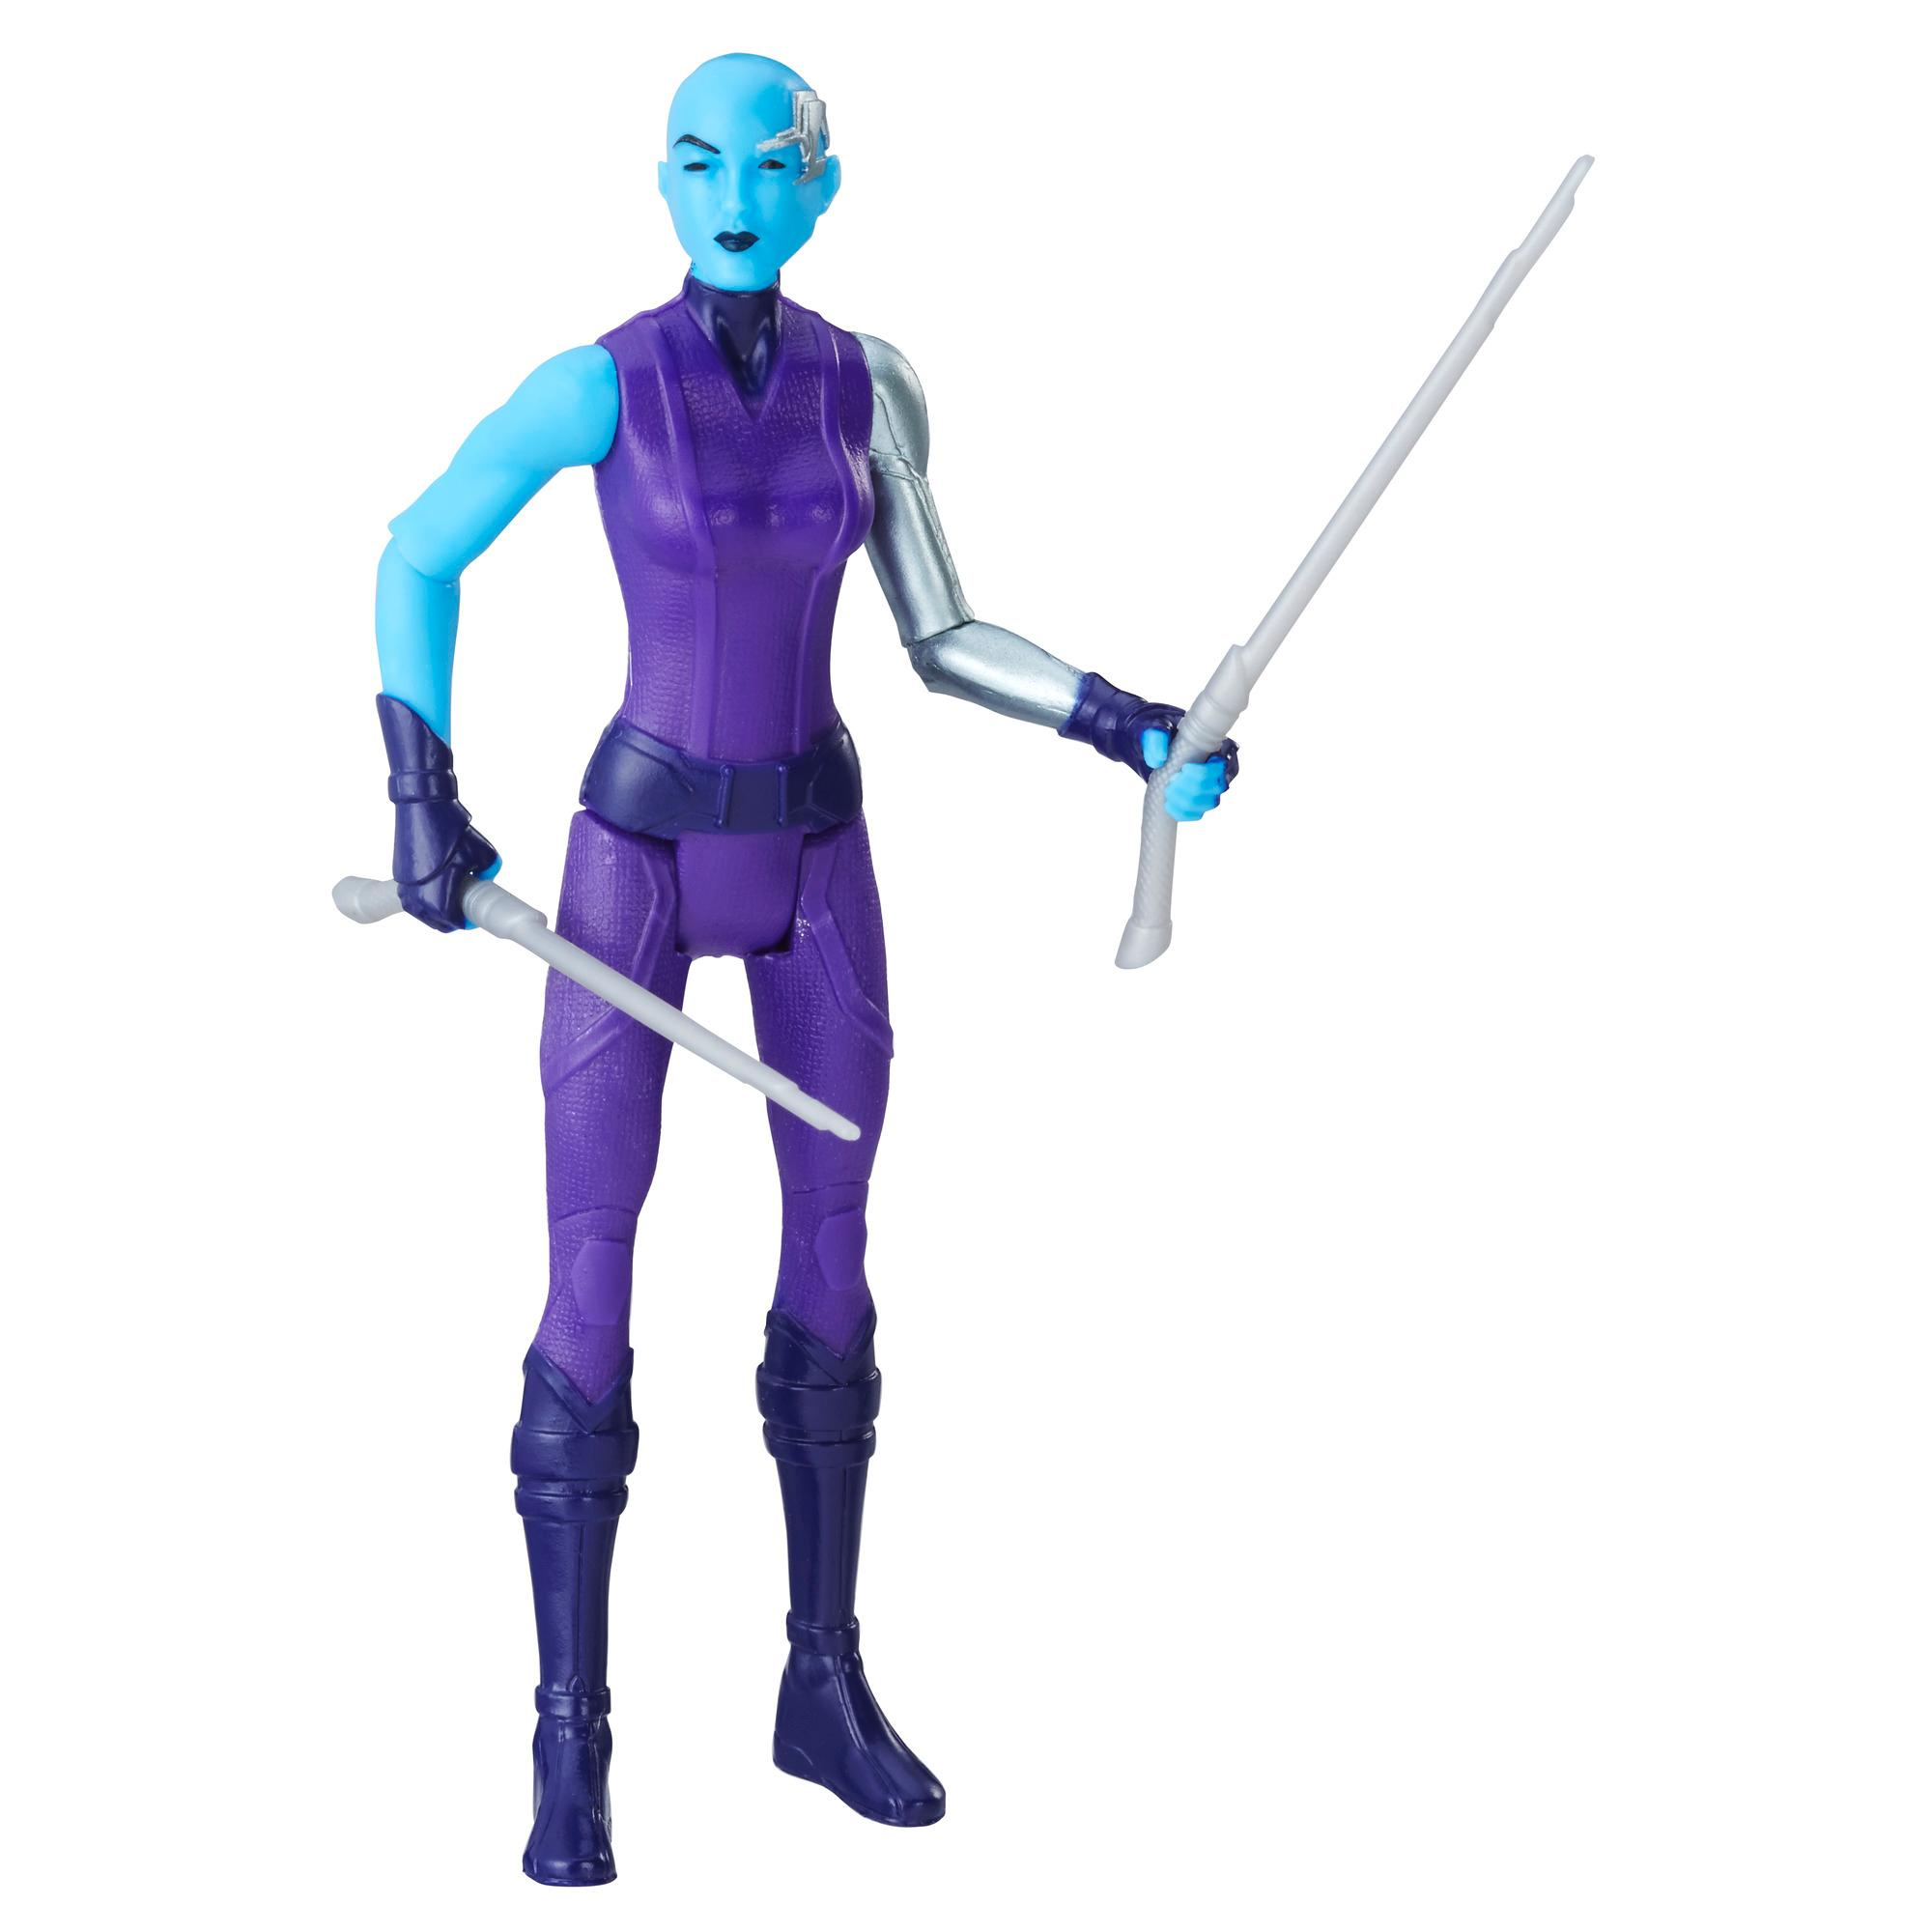 Marvel Guardians of the Galaxy 6-inch Marvel's Nebula